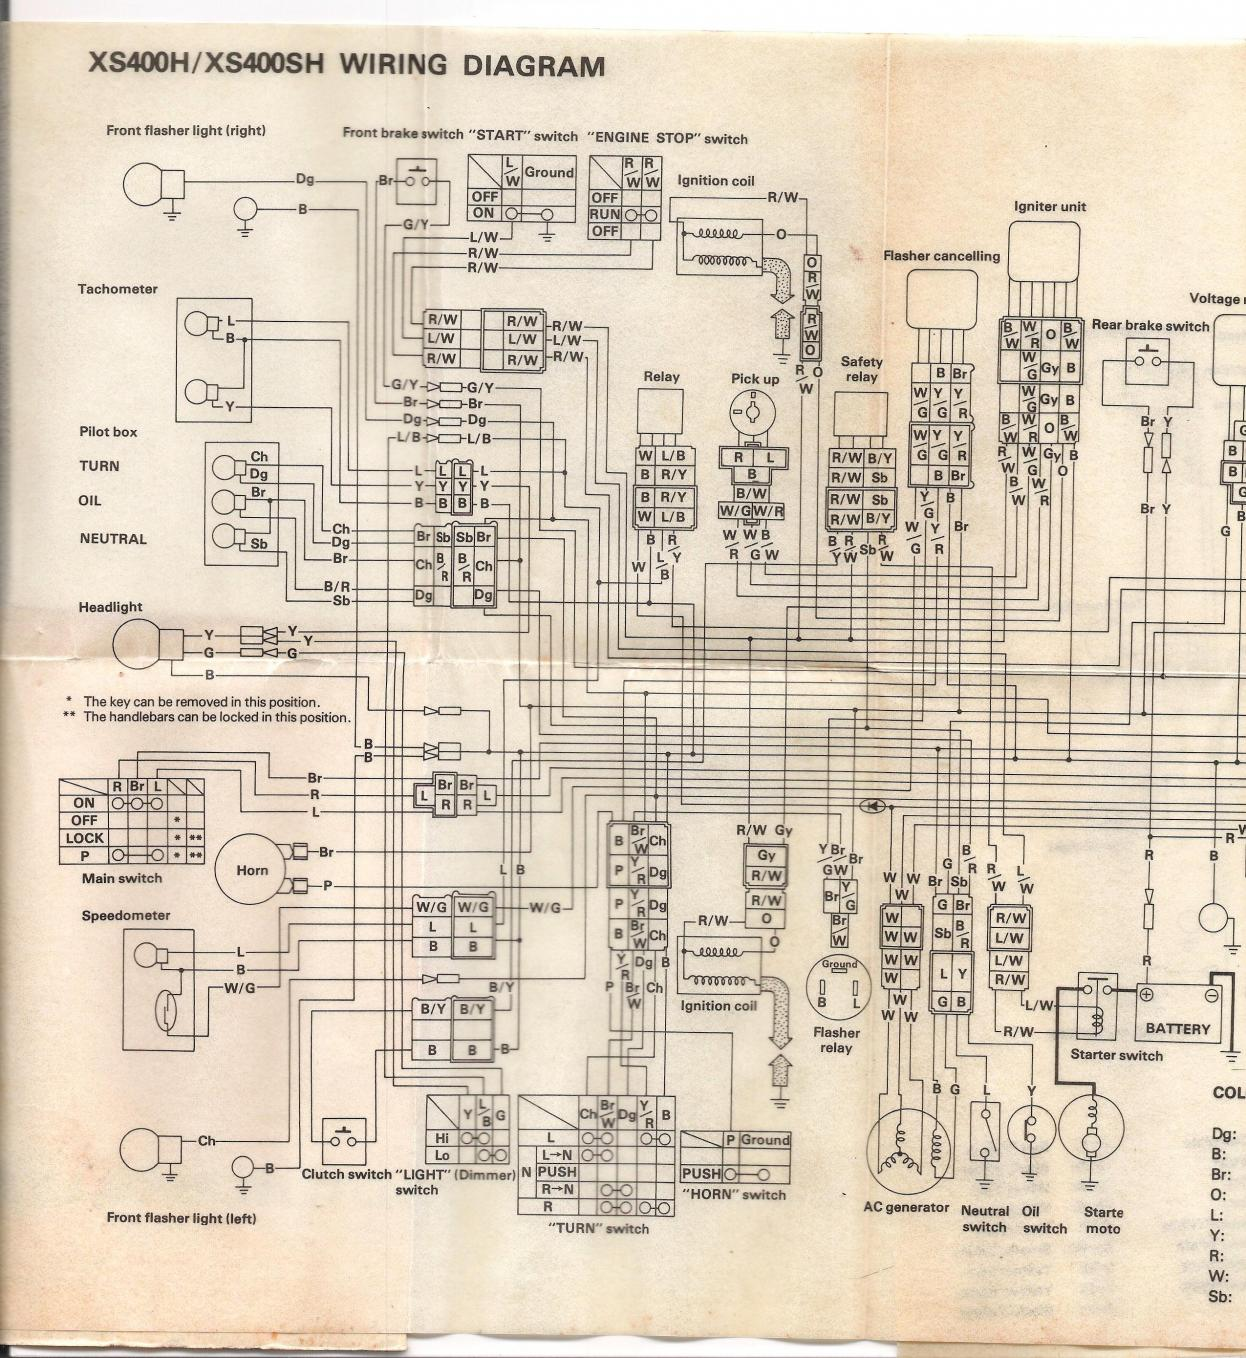 1961 Chrysler 300 Wiring Diagram Trusted 1948 Starting Know About U2022 Dodge